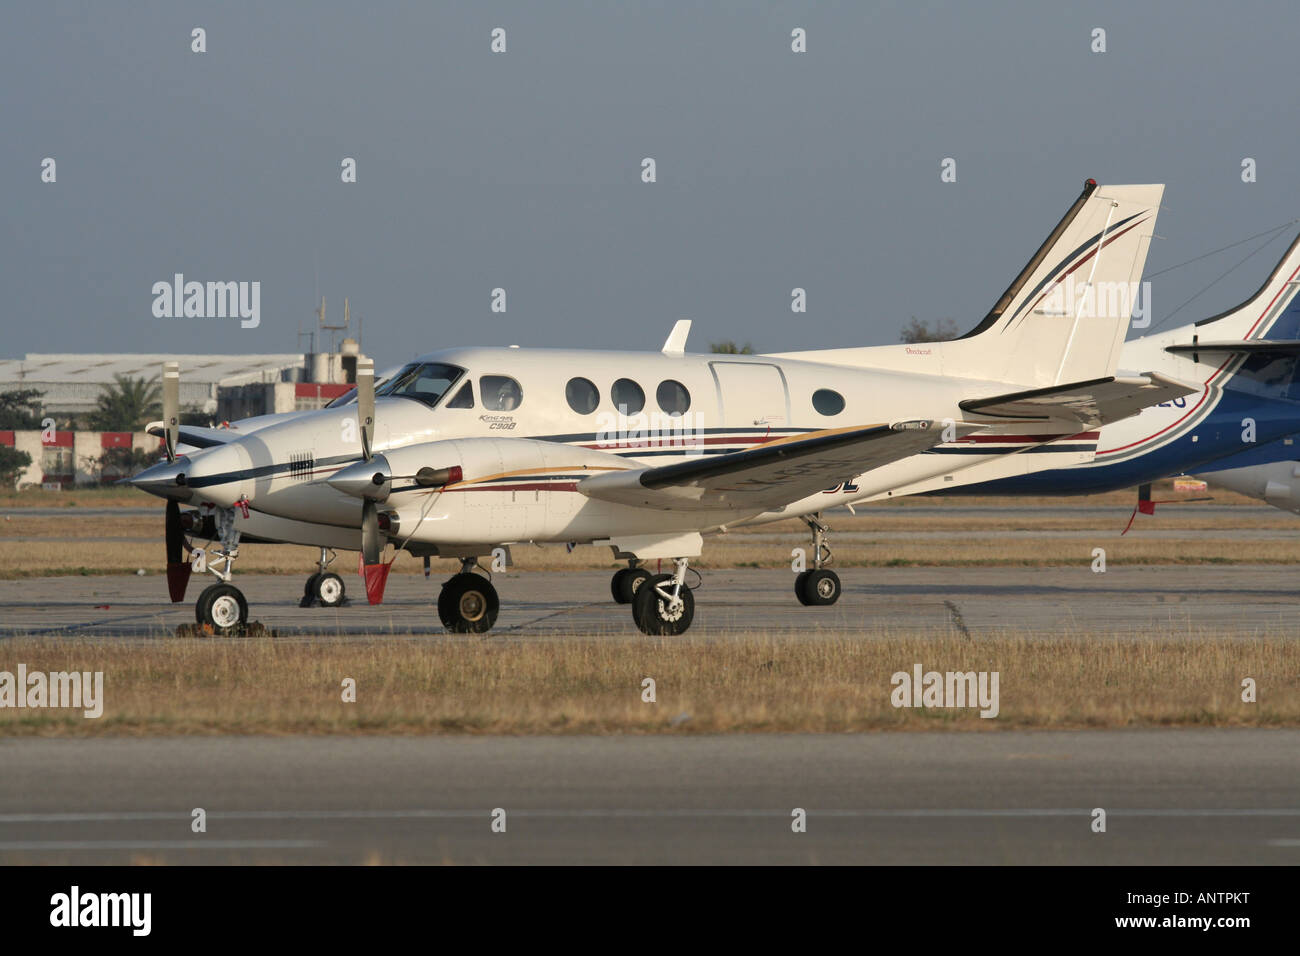 Beech C90B King Air turboprop commuter plane parked at airport apron - Stock Image